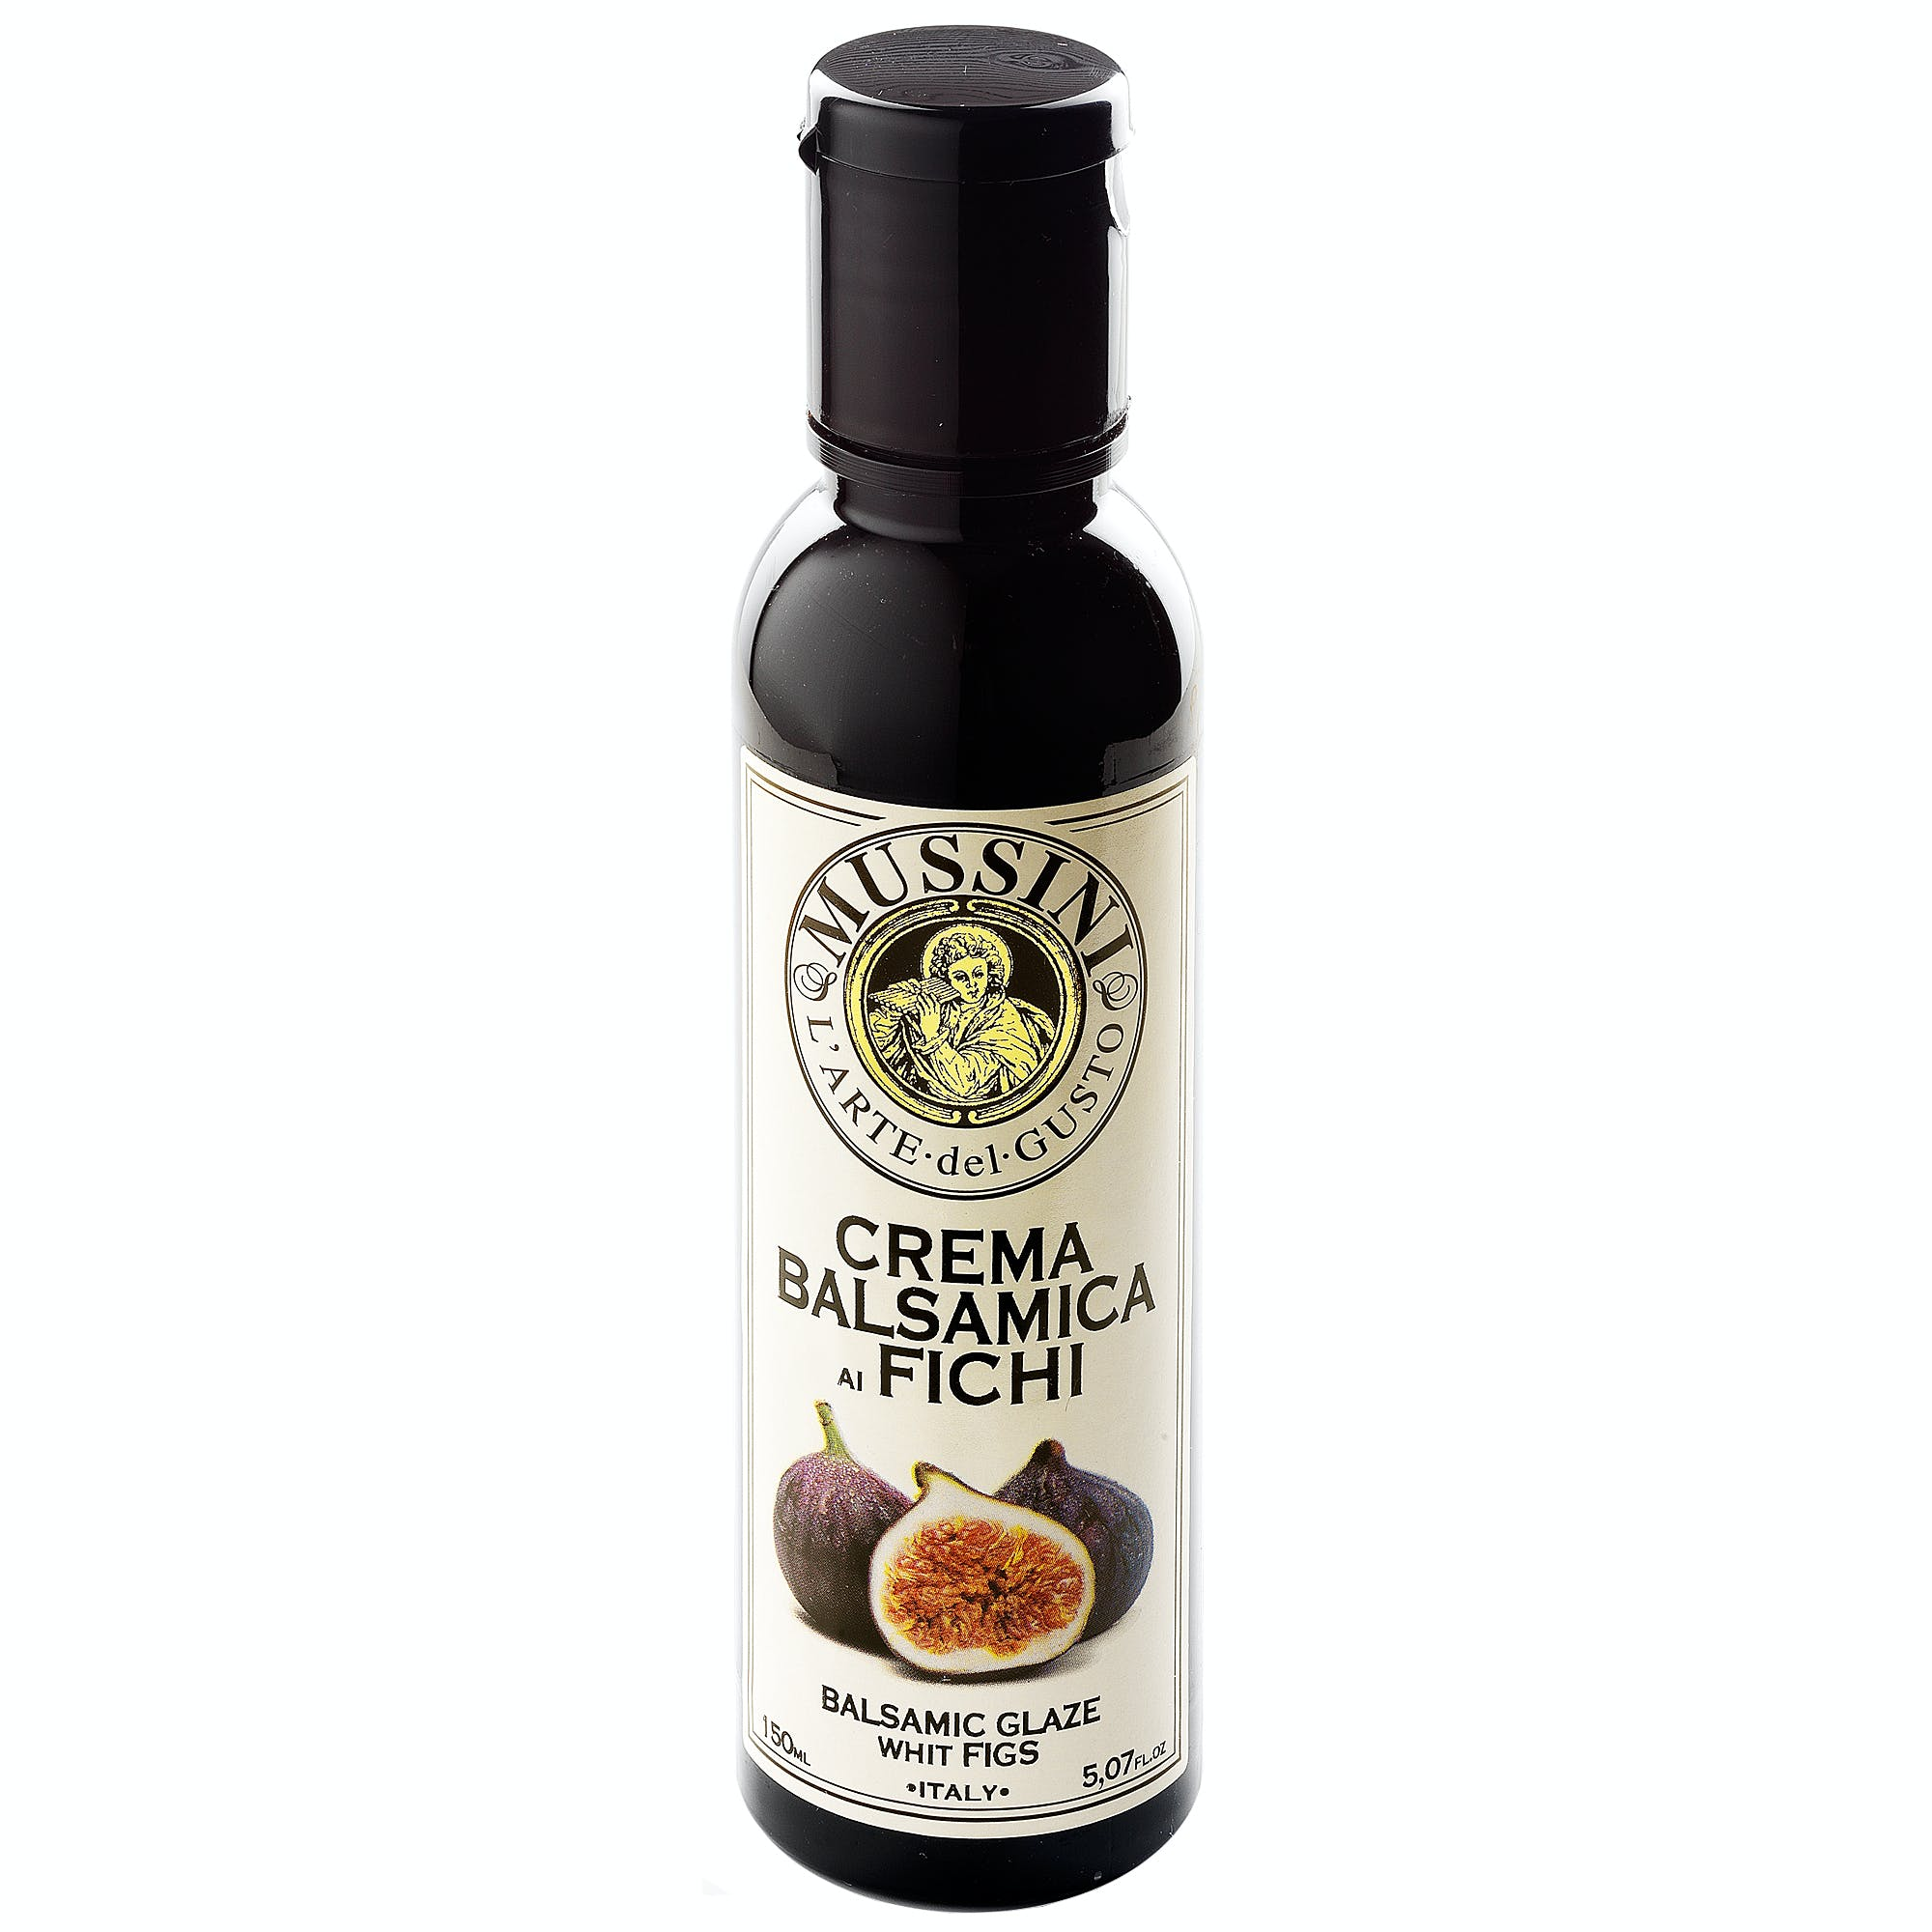 Italian Fig Balsamic Glazes From Mussini, 5.1 Ounces Balsamic Vinegar sold by M5 Corporation